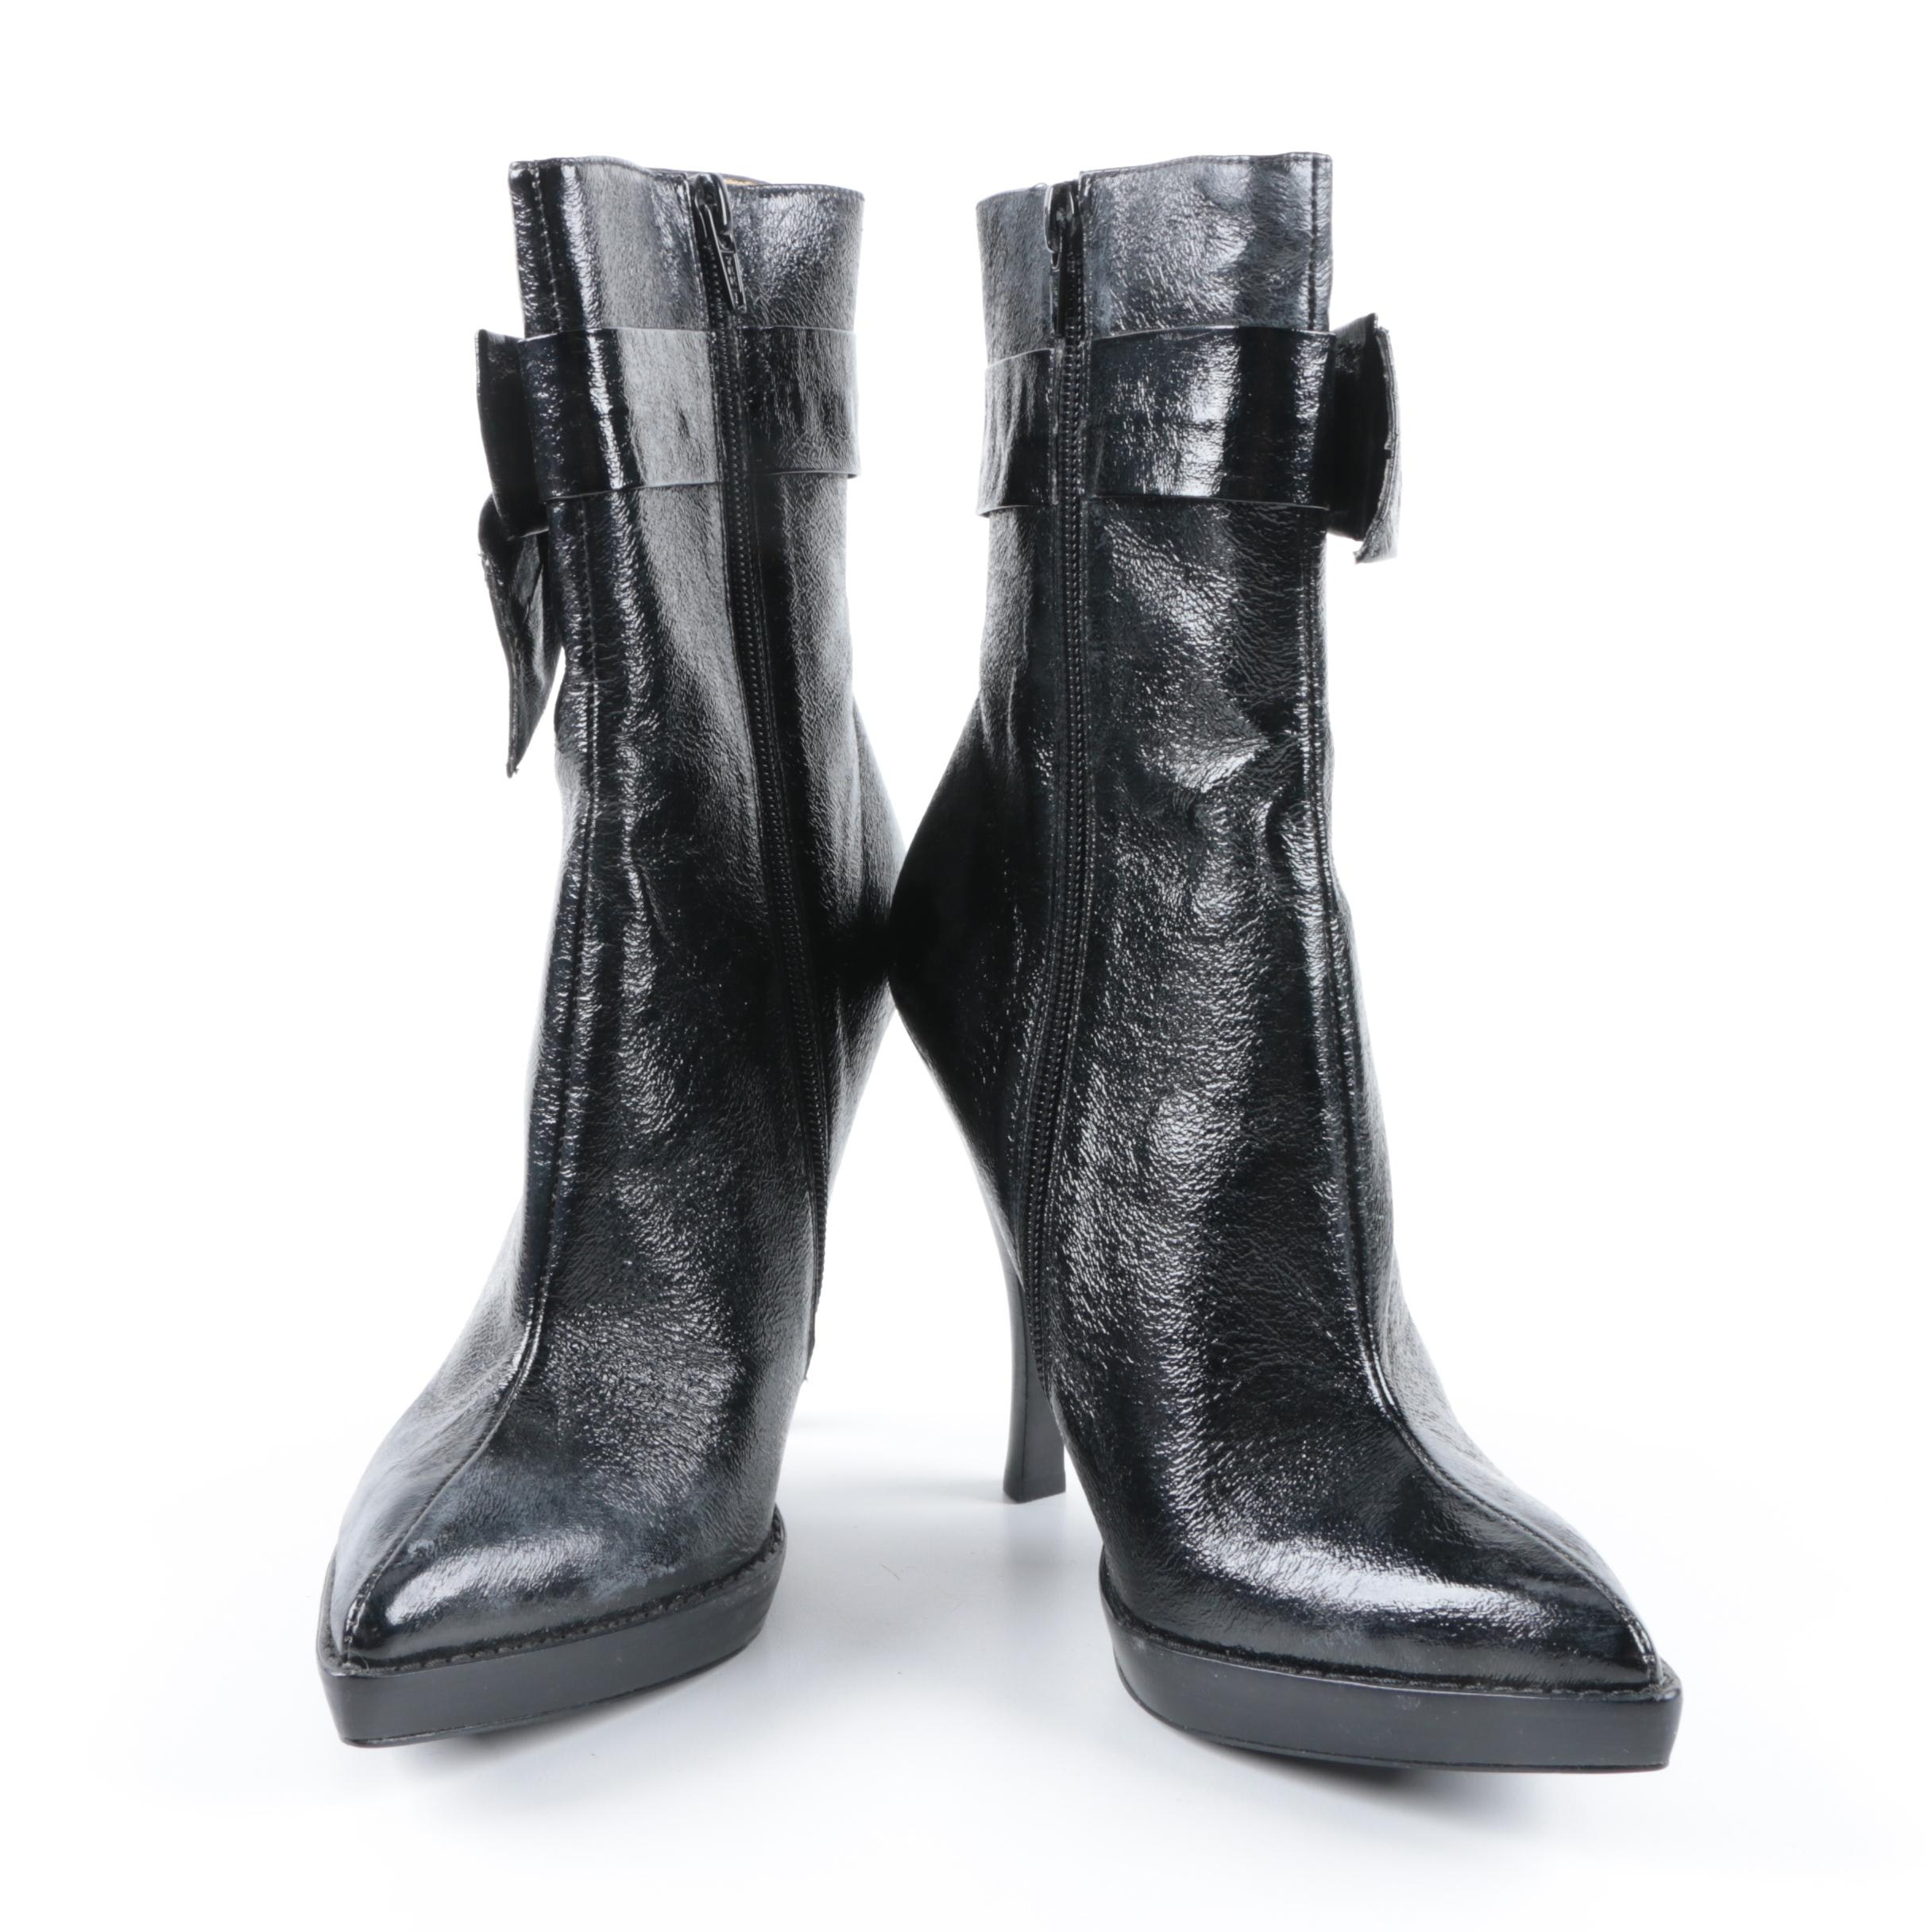 Hale Bob Black Side Bow Stiletto Boots